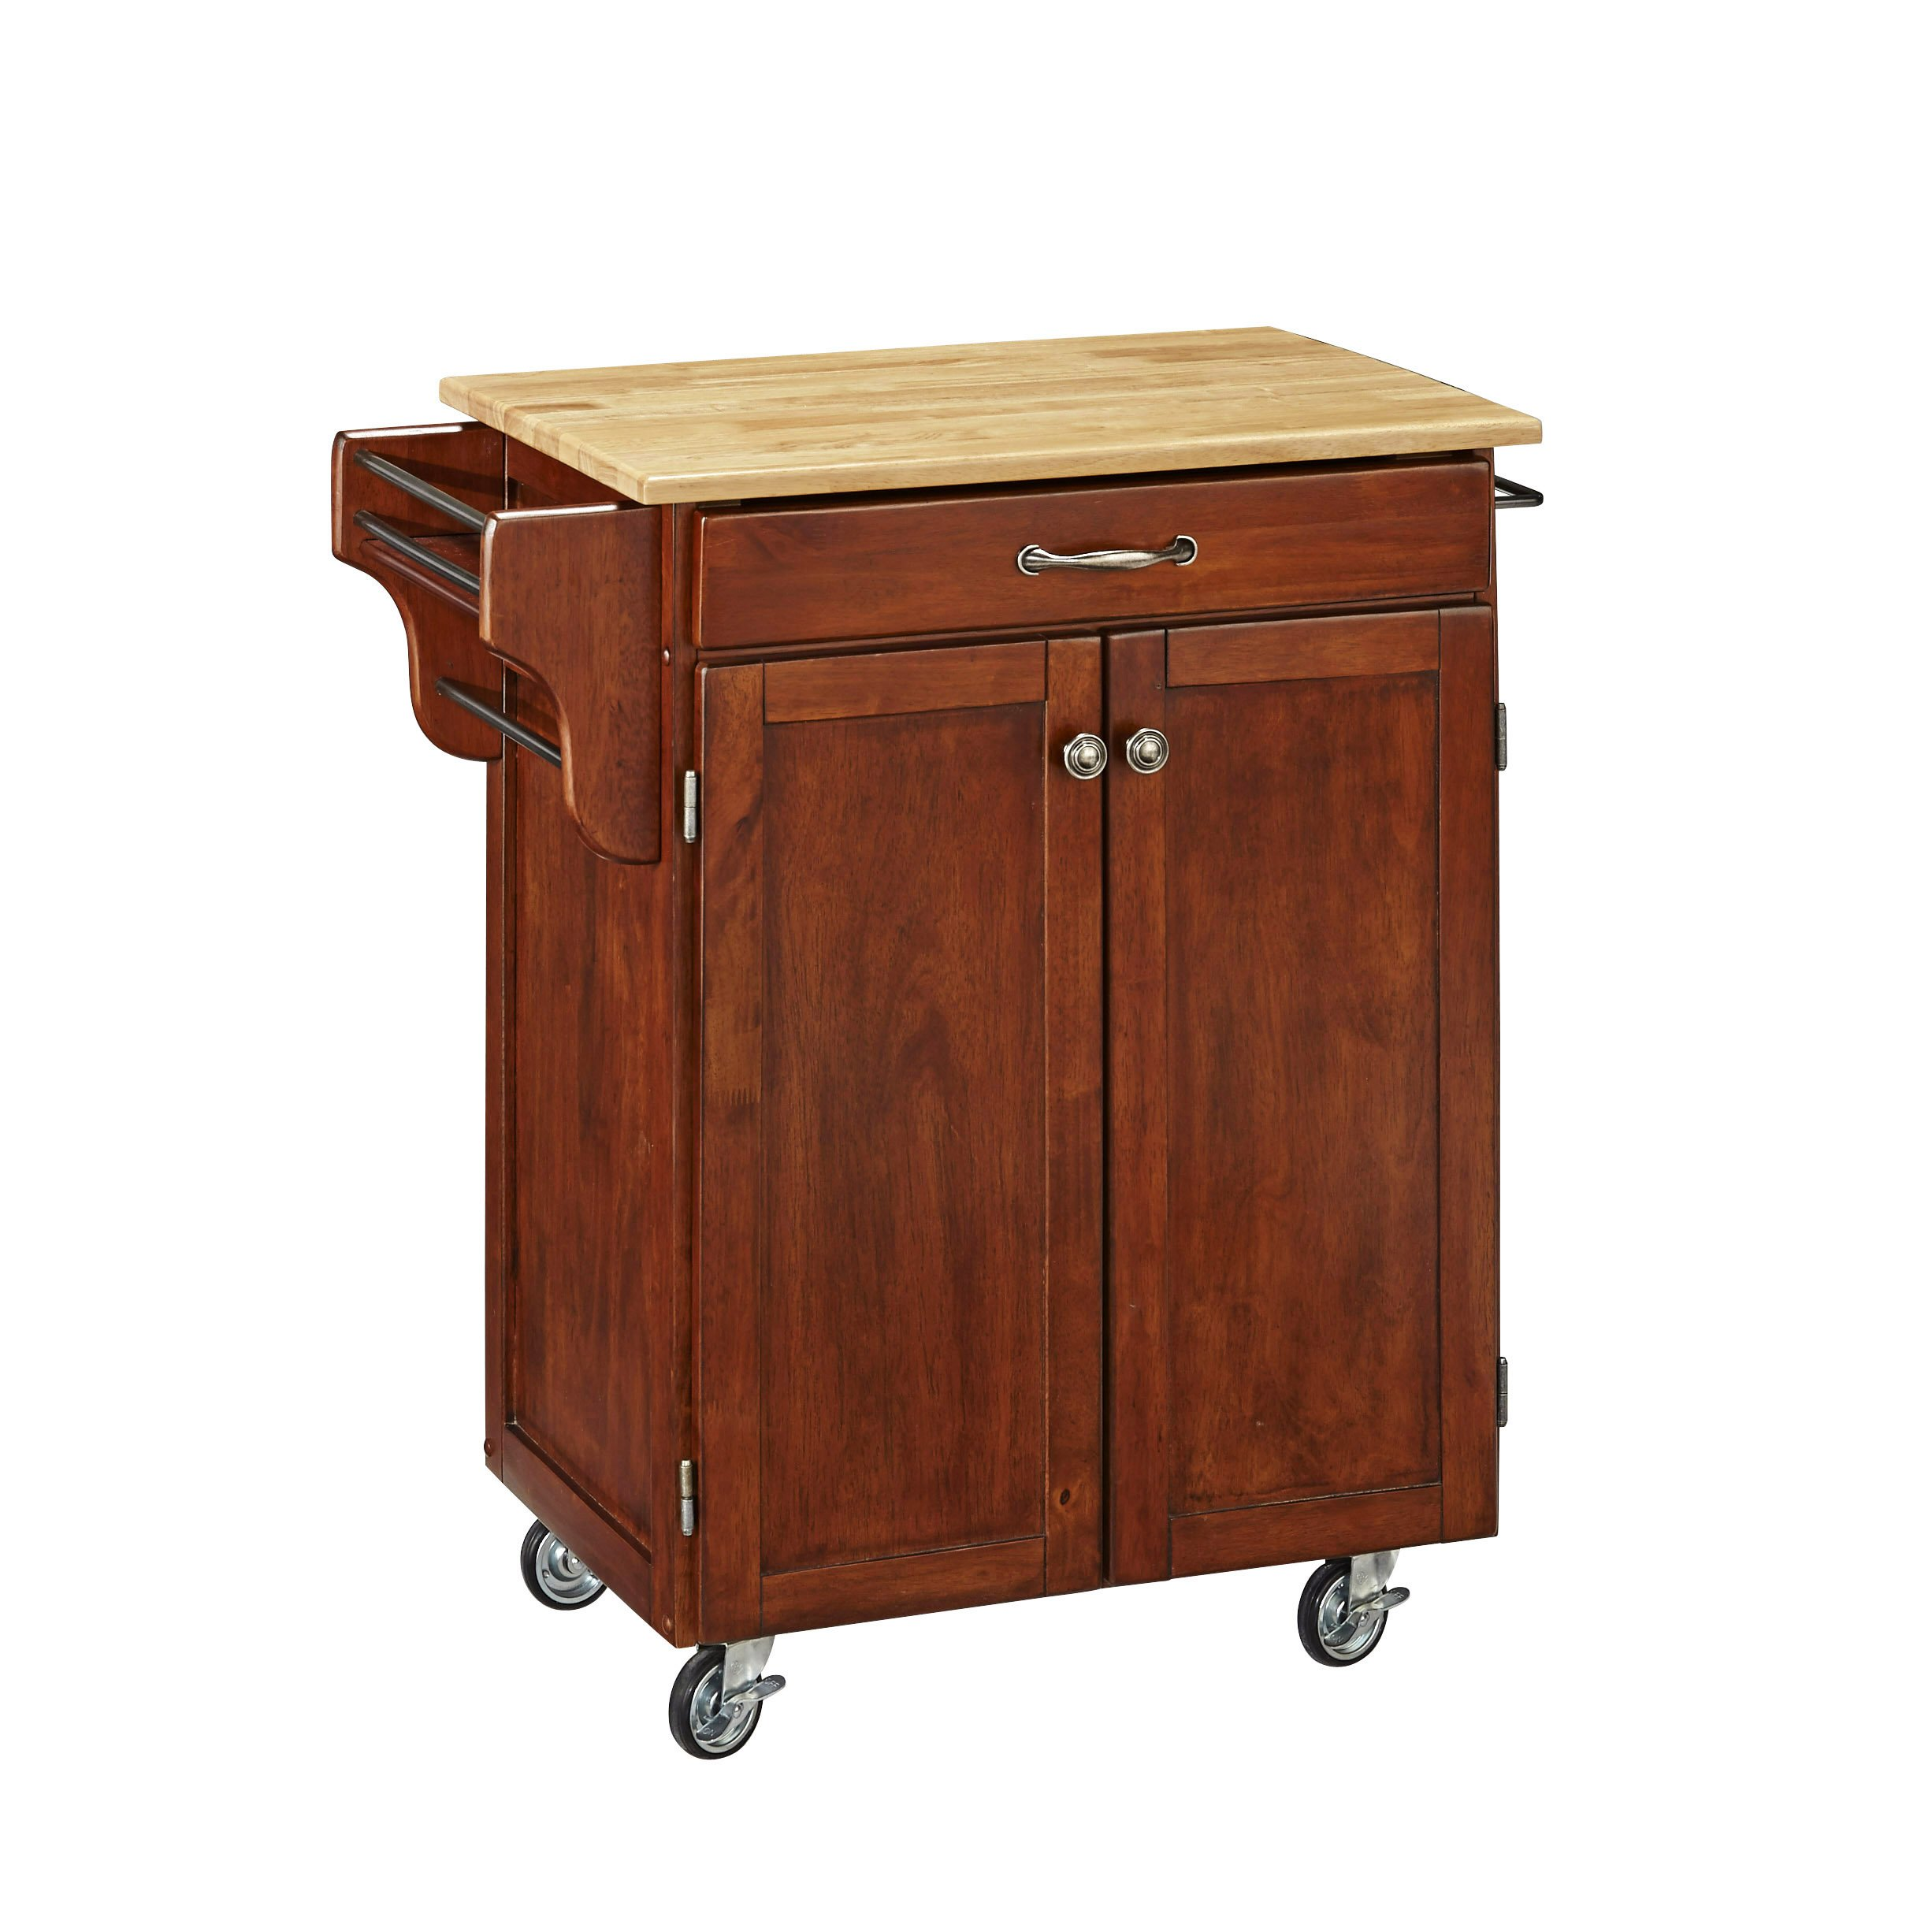 Home Styles 9001-0071 Create-a-Cart 9001 Series Cuisine Cart with Natural Wood Top, Cherry, 32-1/2-Inch